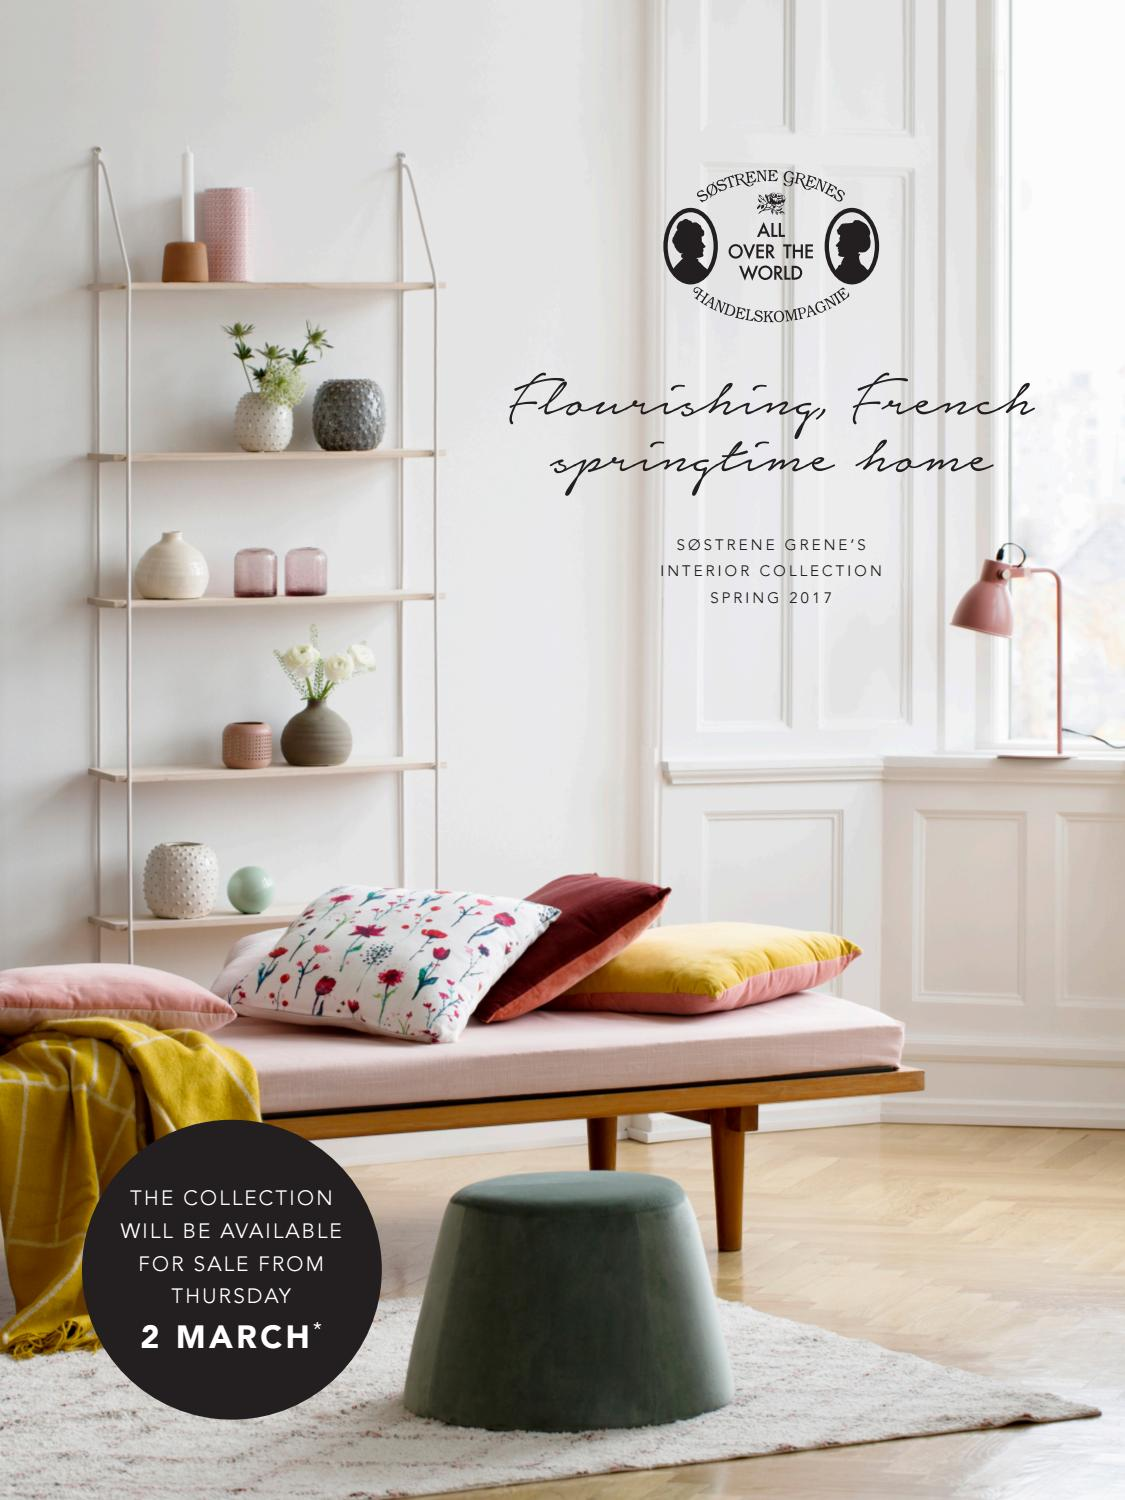 En mobile s strene grene s interior collection for Home interior collection